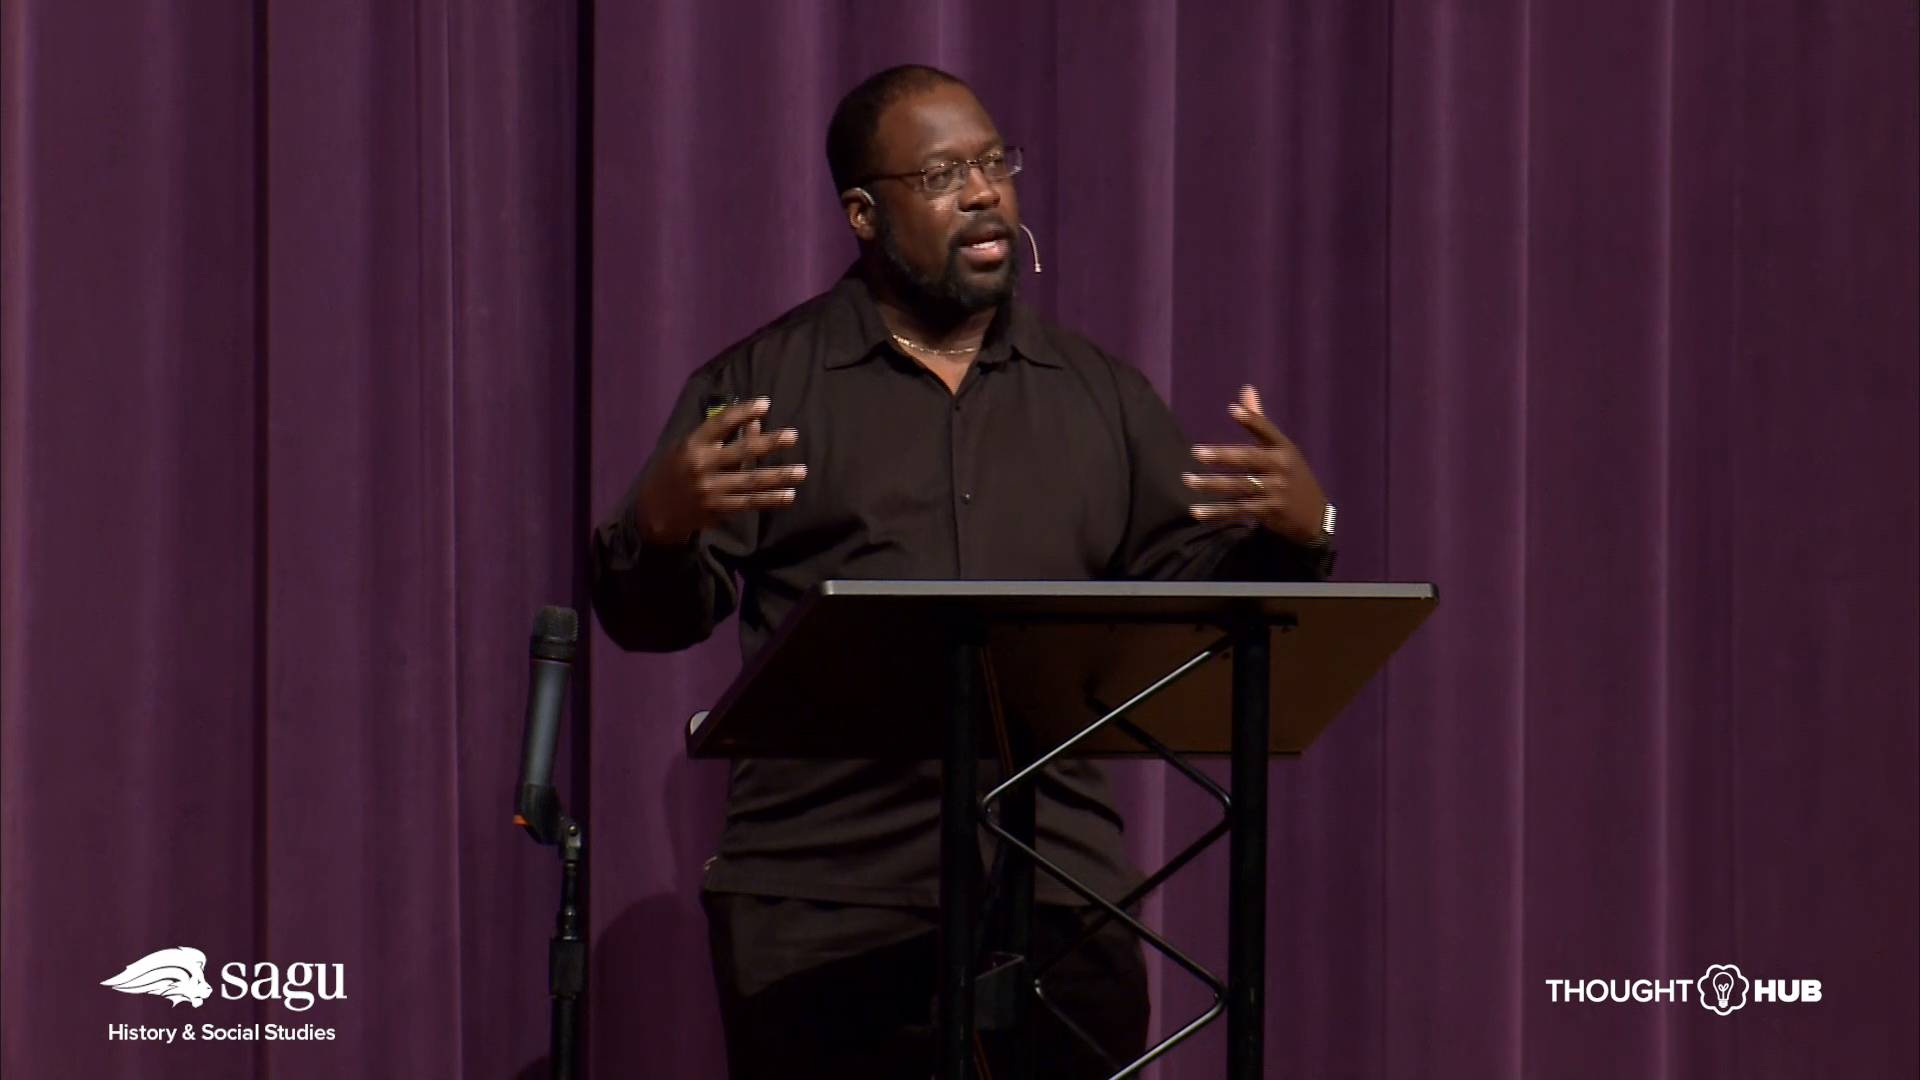 Tyrone Block discusses the beginnings of US military bands in America